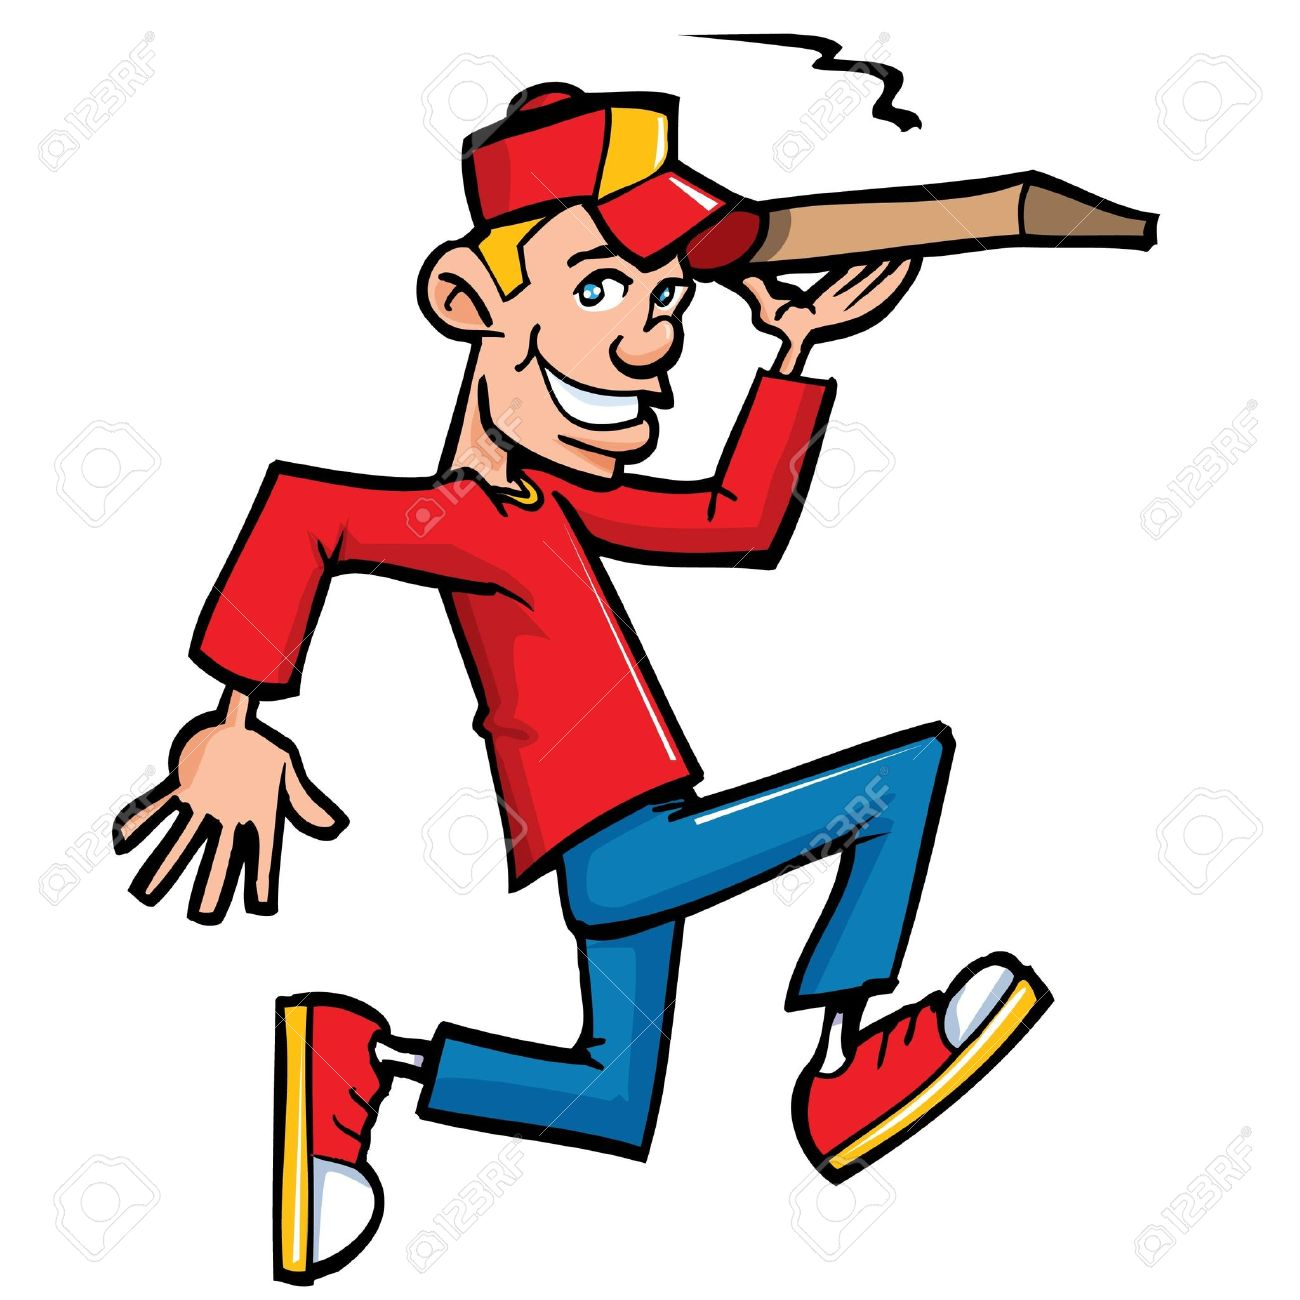 Delivery guy clipart.